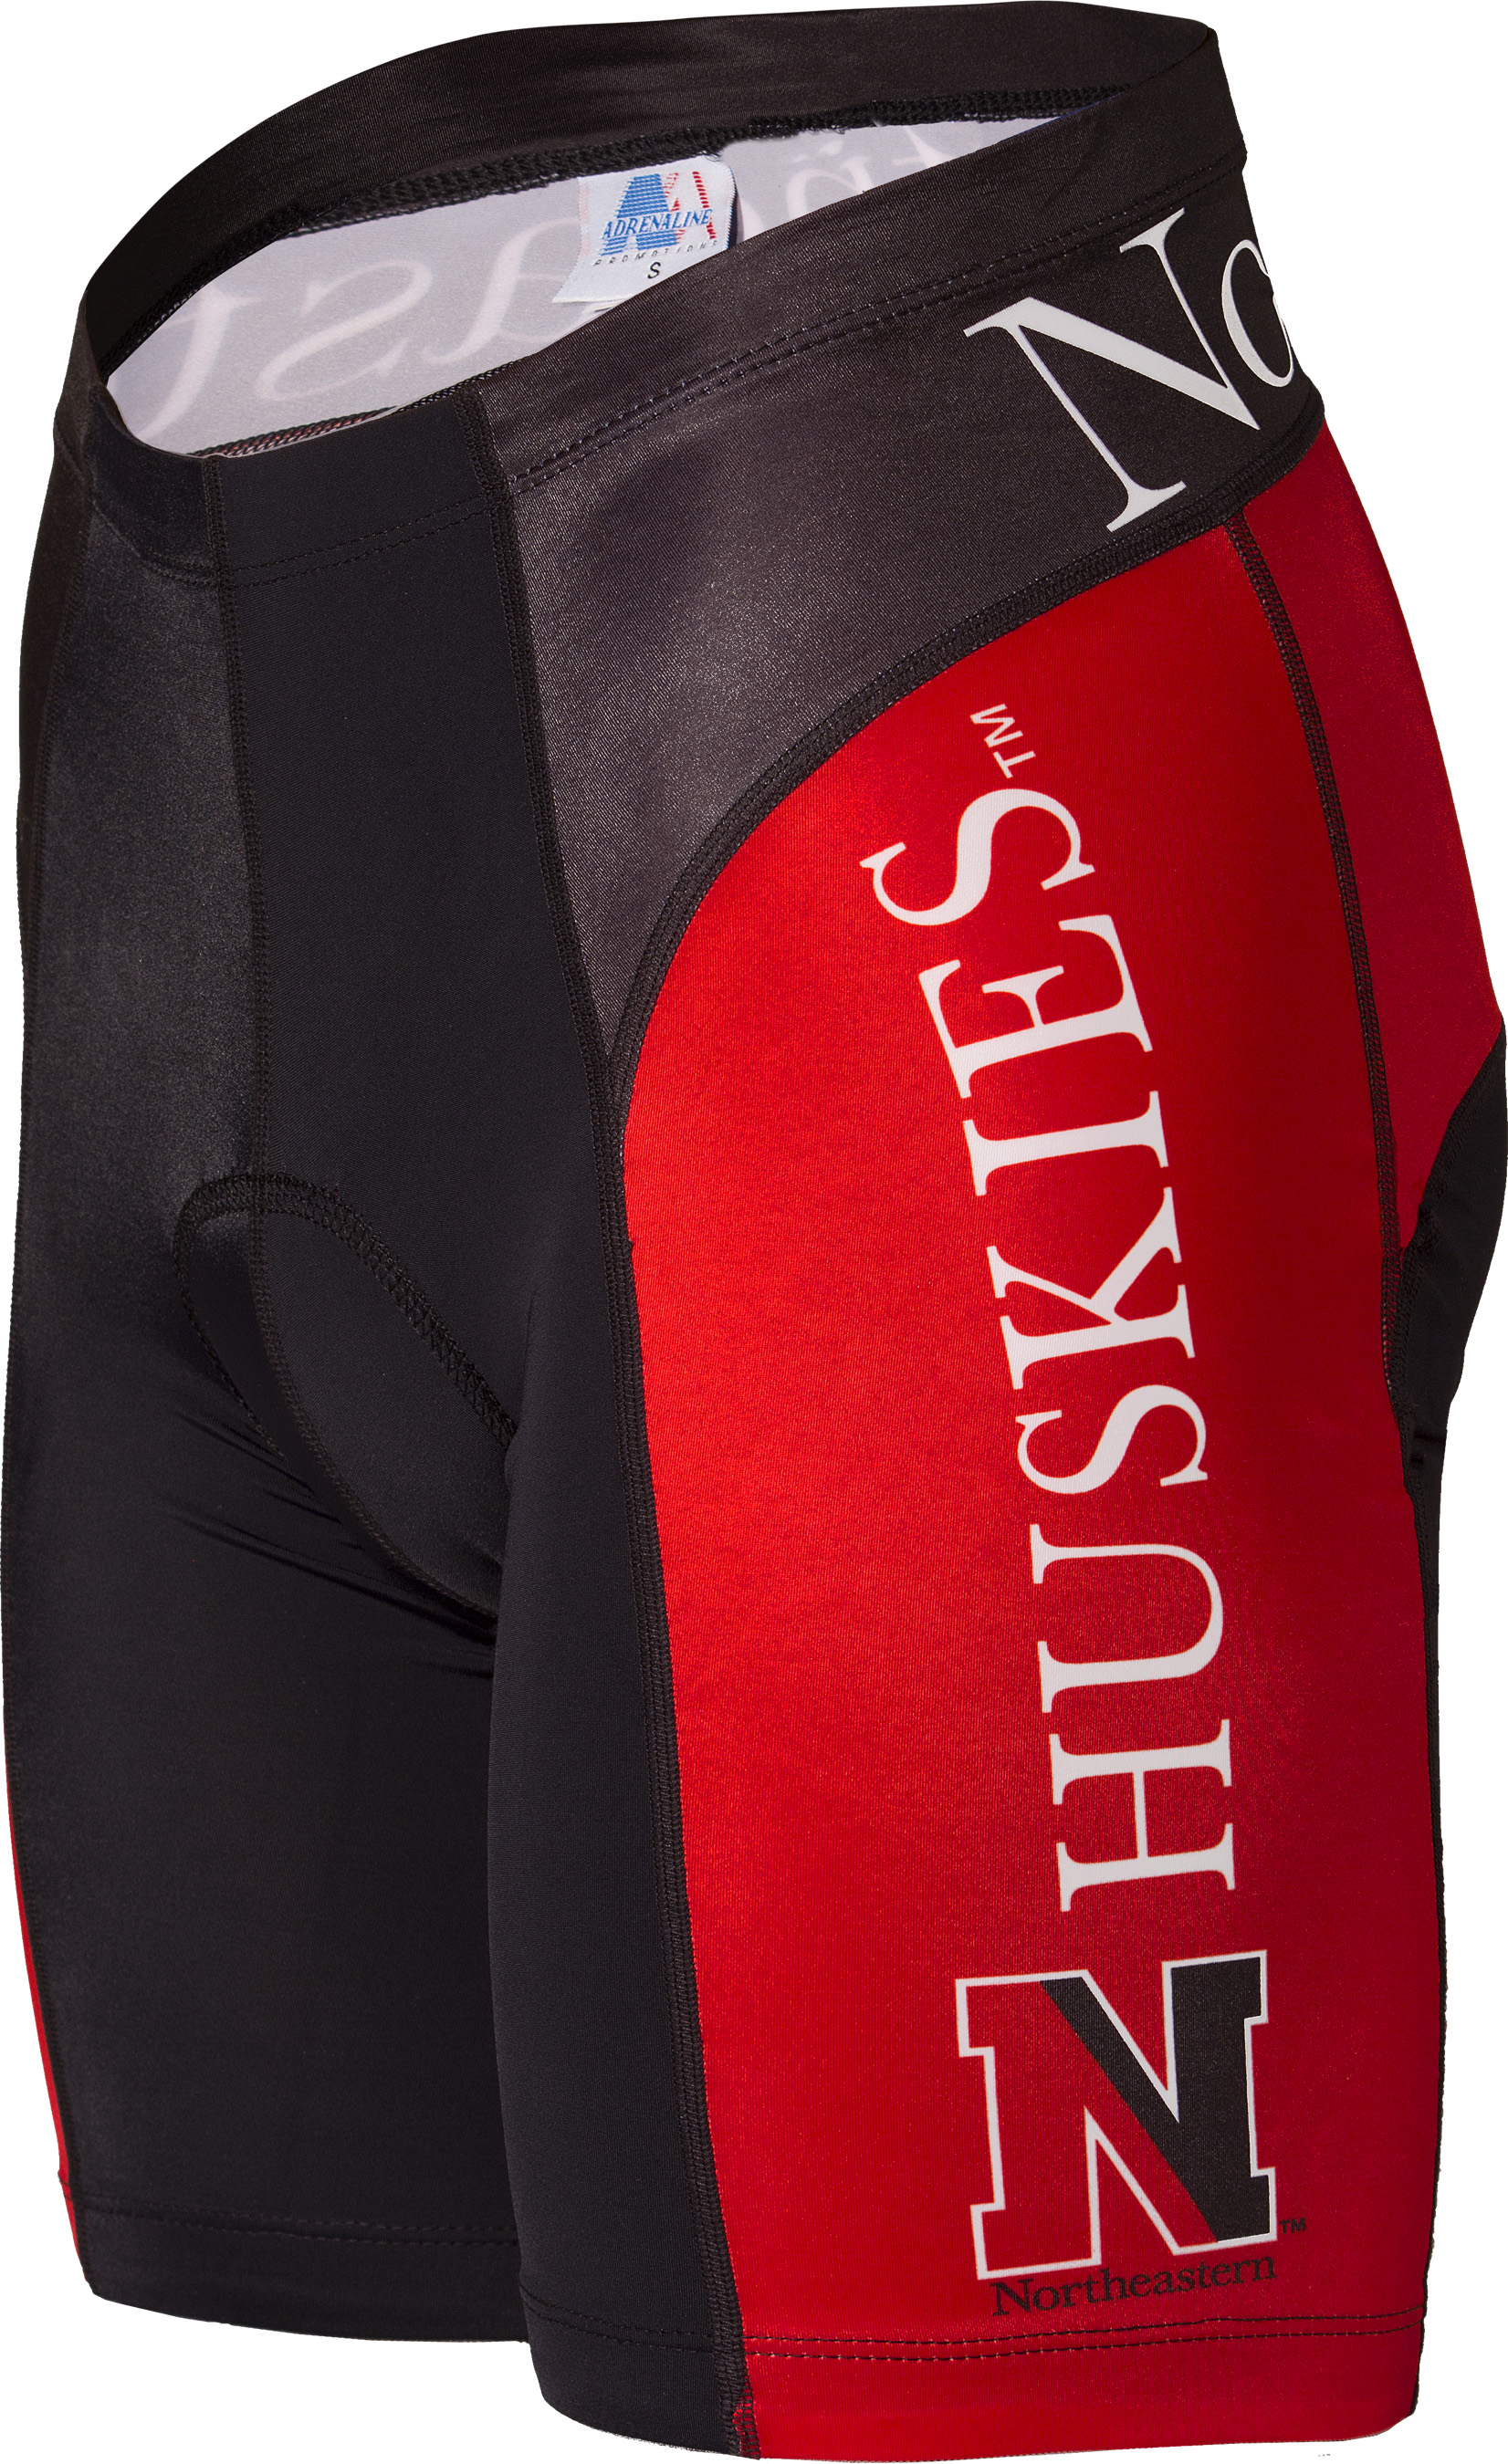 Northeastern University Huskies Cycling Shorts